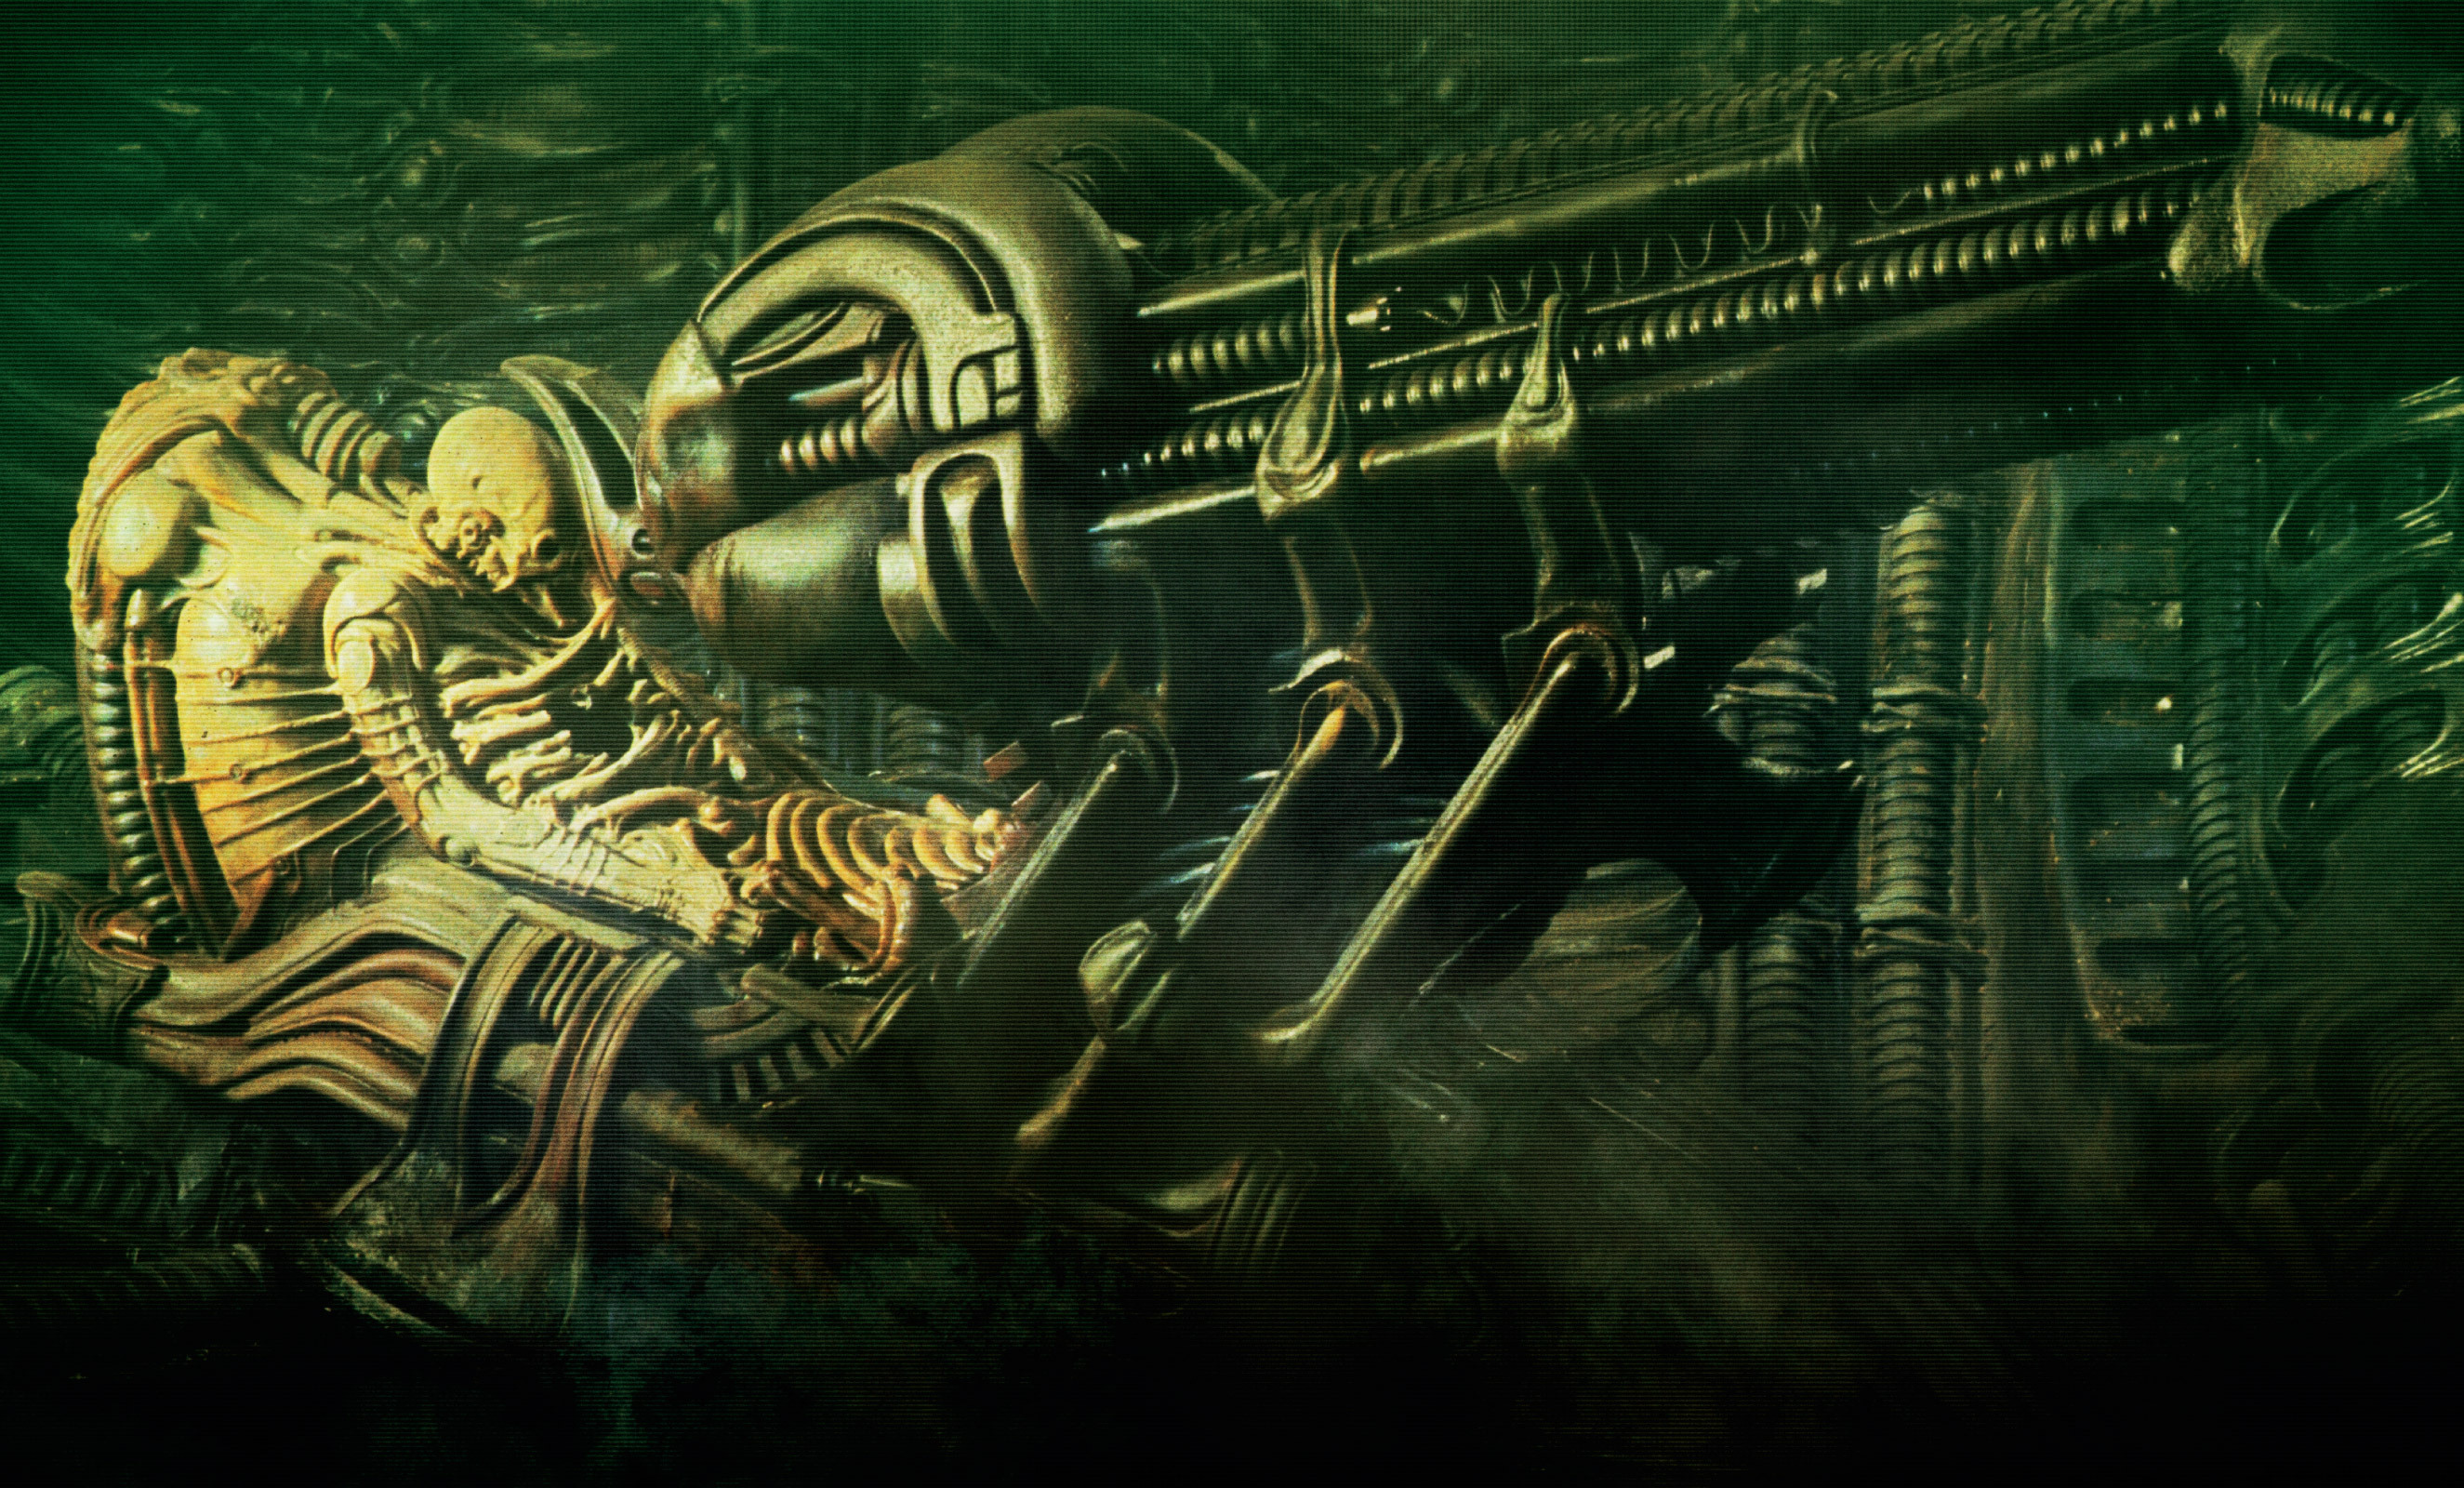 Alien Computer Wallpapers, Desktop Backgrounds | 2650x1600 | ID:156711 H.r. Giger Wallpaper